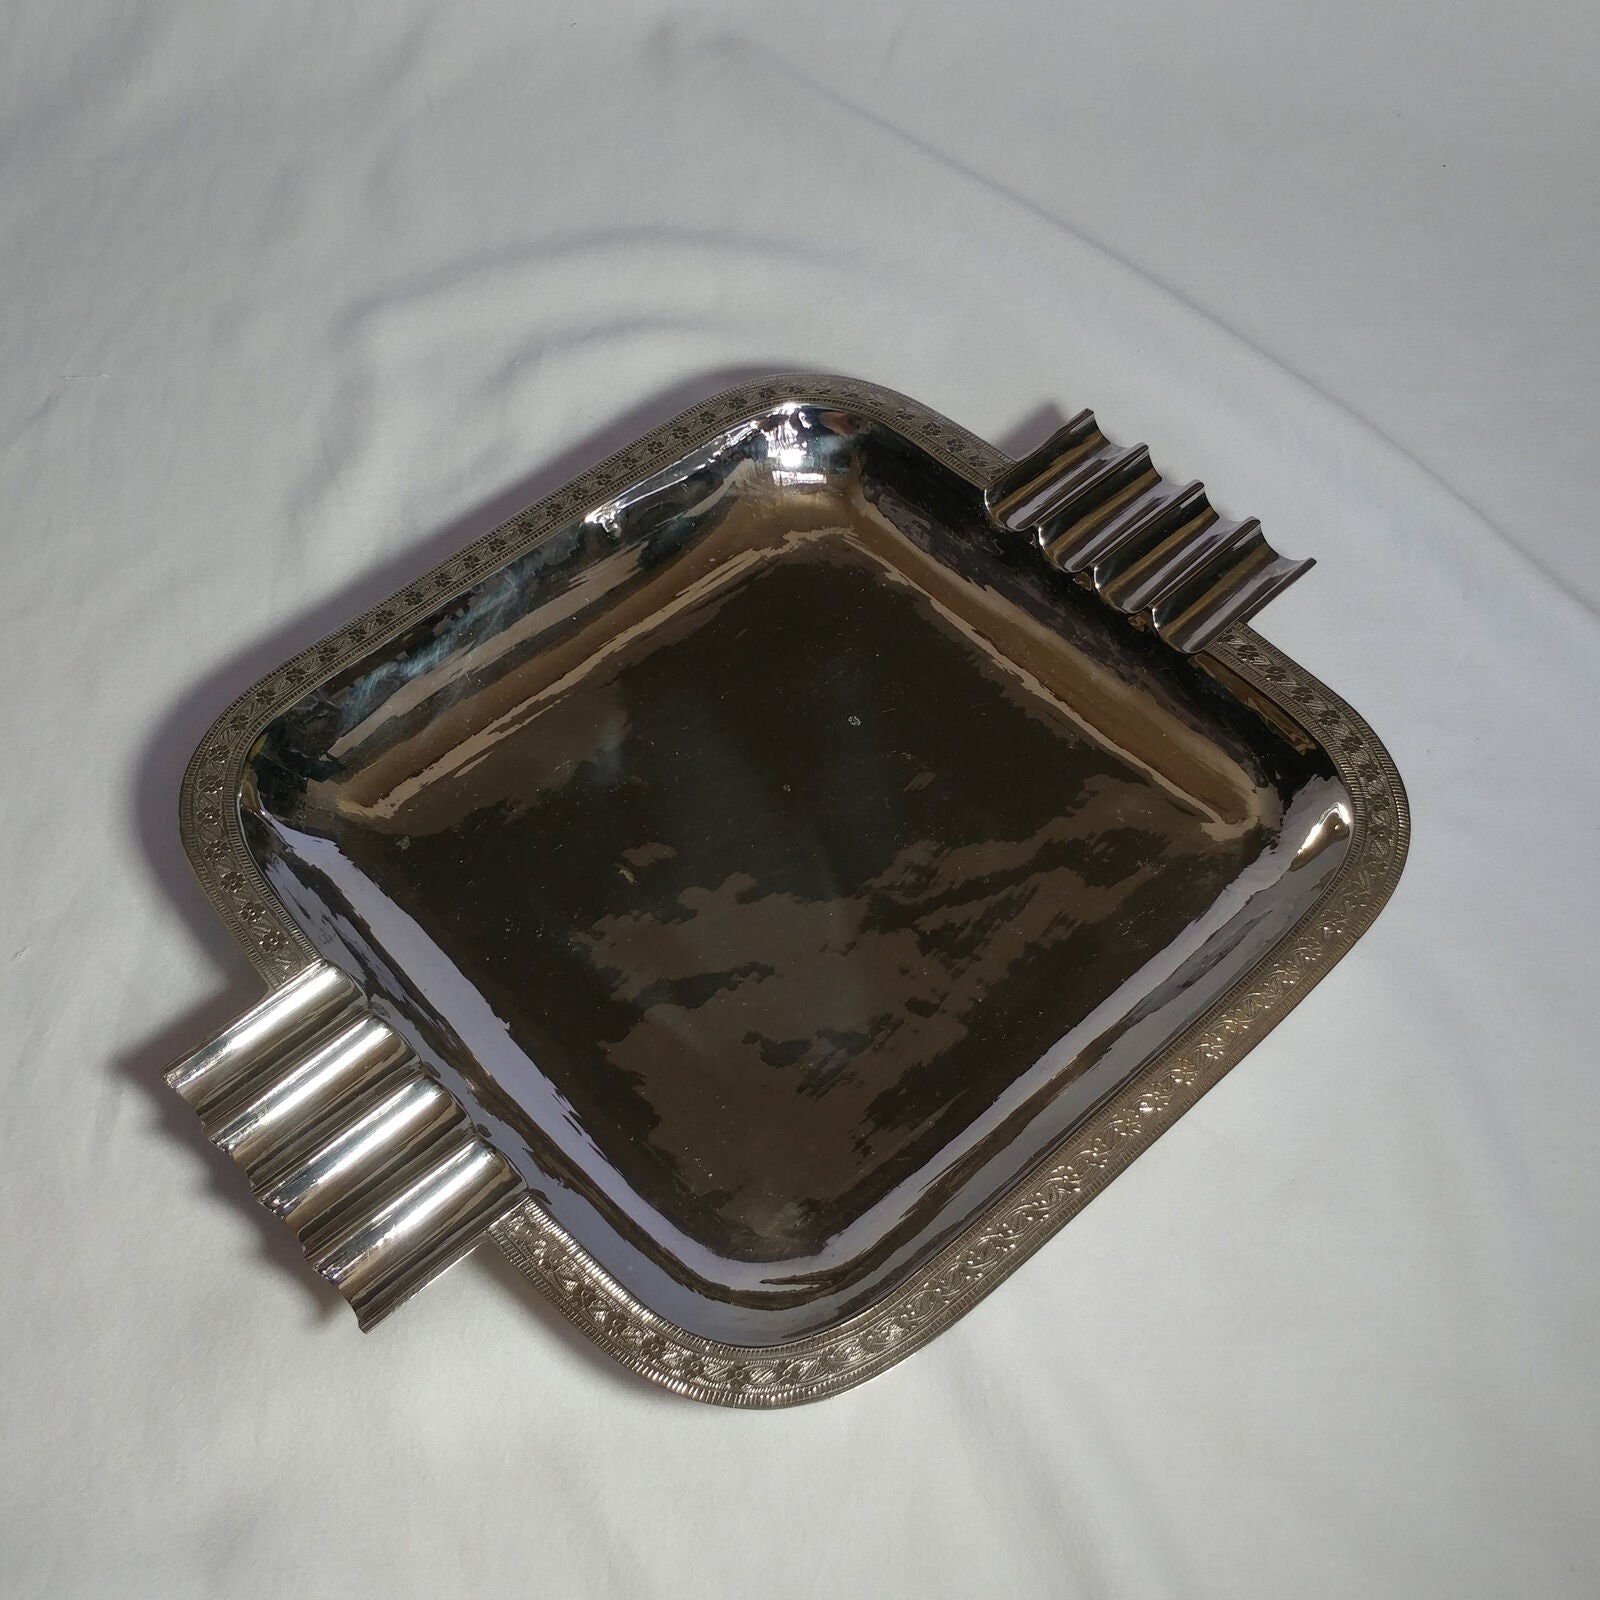 Chrome over Brass  Plated Serving Tray